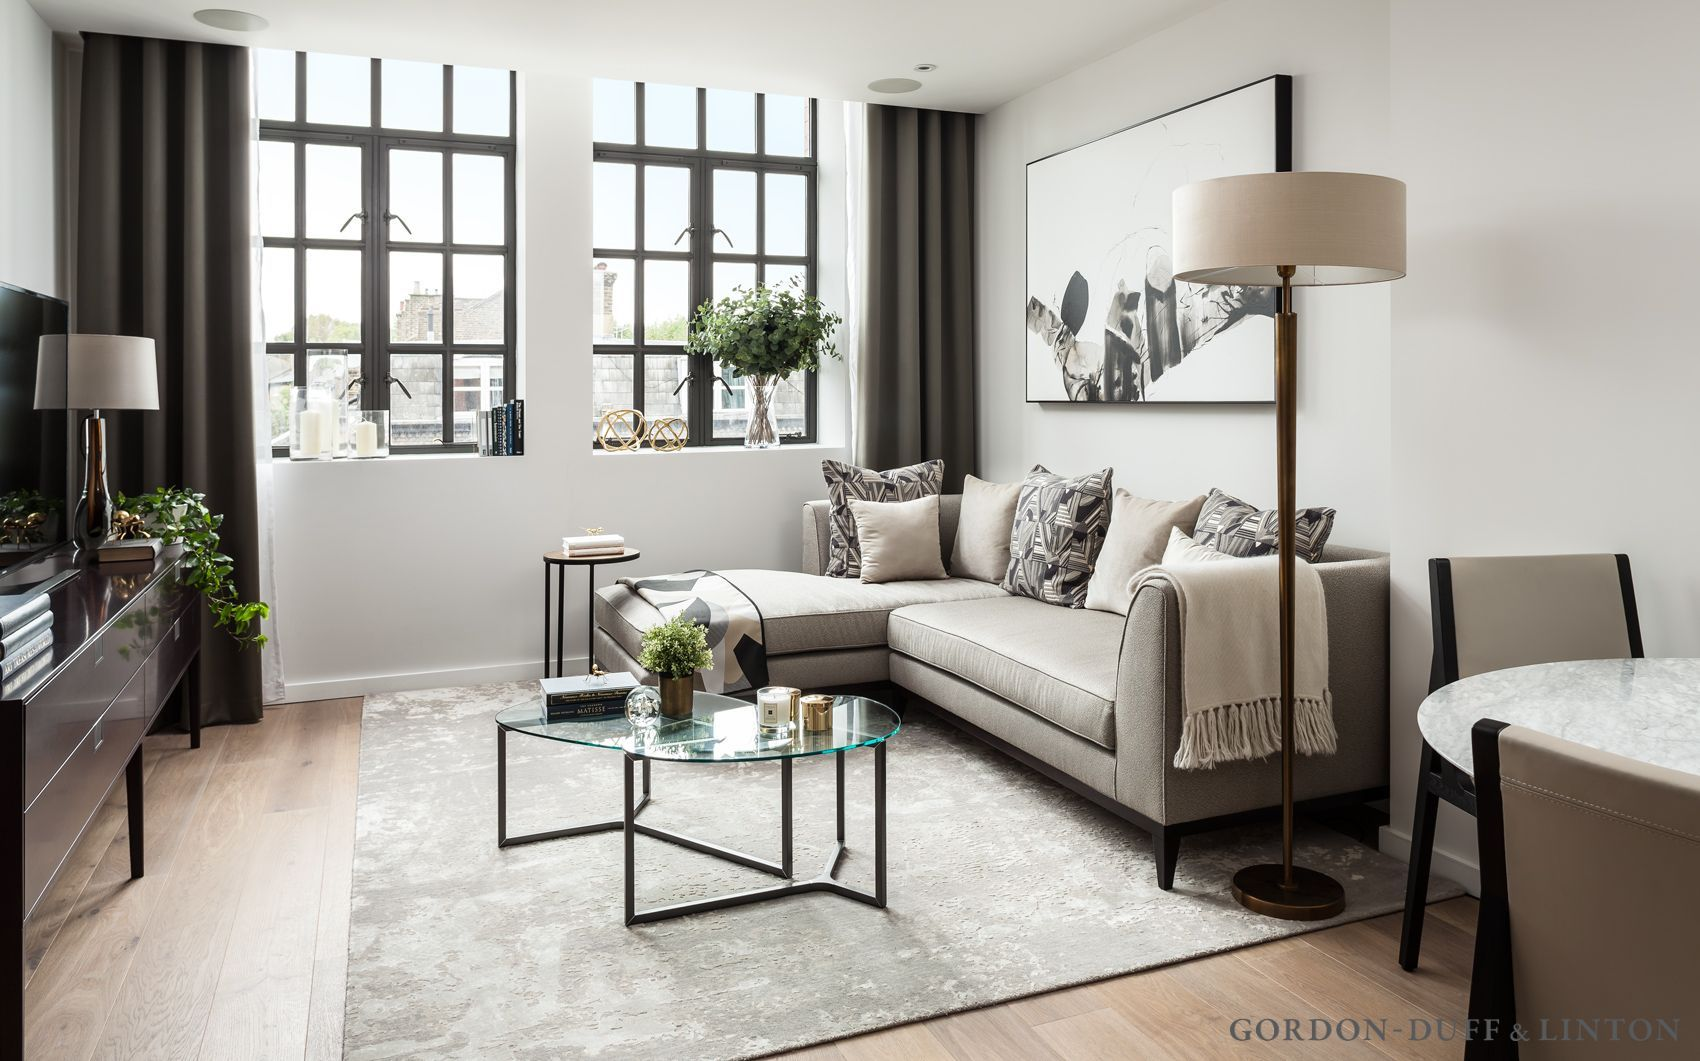 New Sitting Room Within Same Maple Building Development